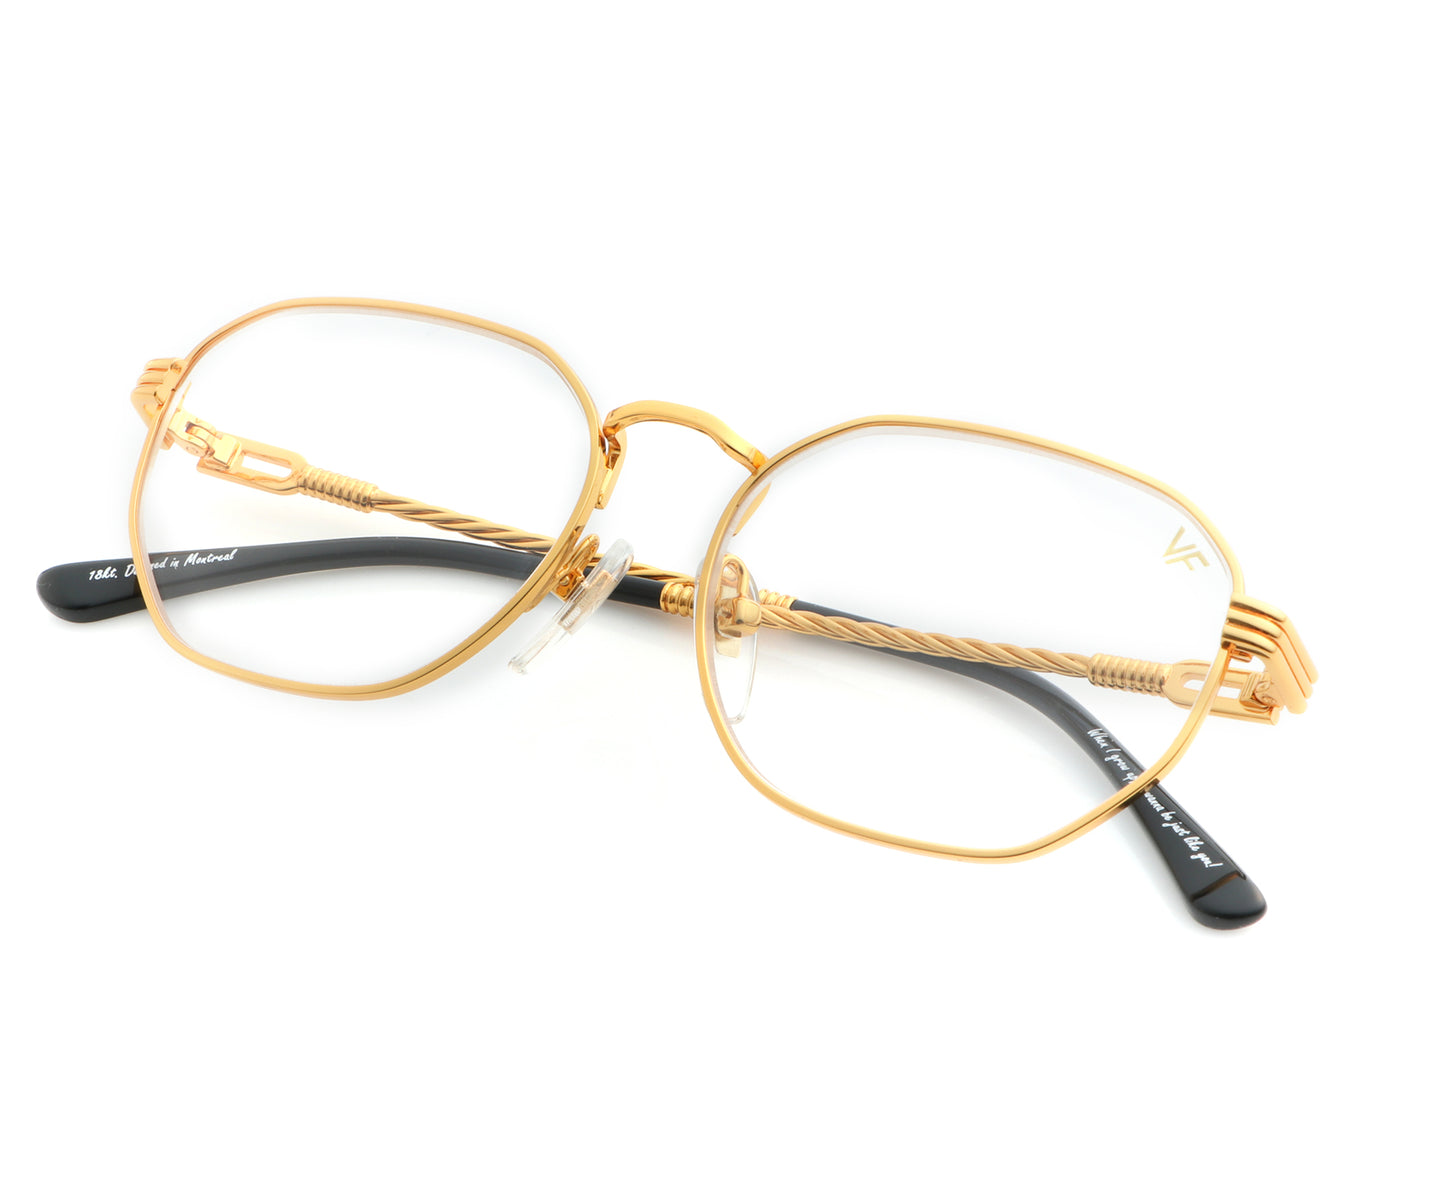 VF Kids Detroit Player 18KT Gold (Clear), VF Kids , glasses frames, eyeglasses online, eyeglass frames, mens glasses, womens glasses, buy glasses online, designer eyeglasses, vintage sunglasses, retro sunglasses, vintage glasses, sunglass, eyeglass, glasses, lens, vintage frames company, vf